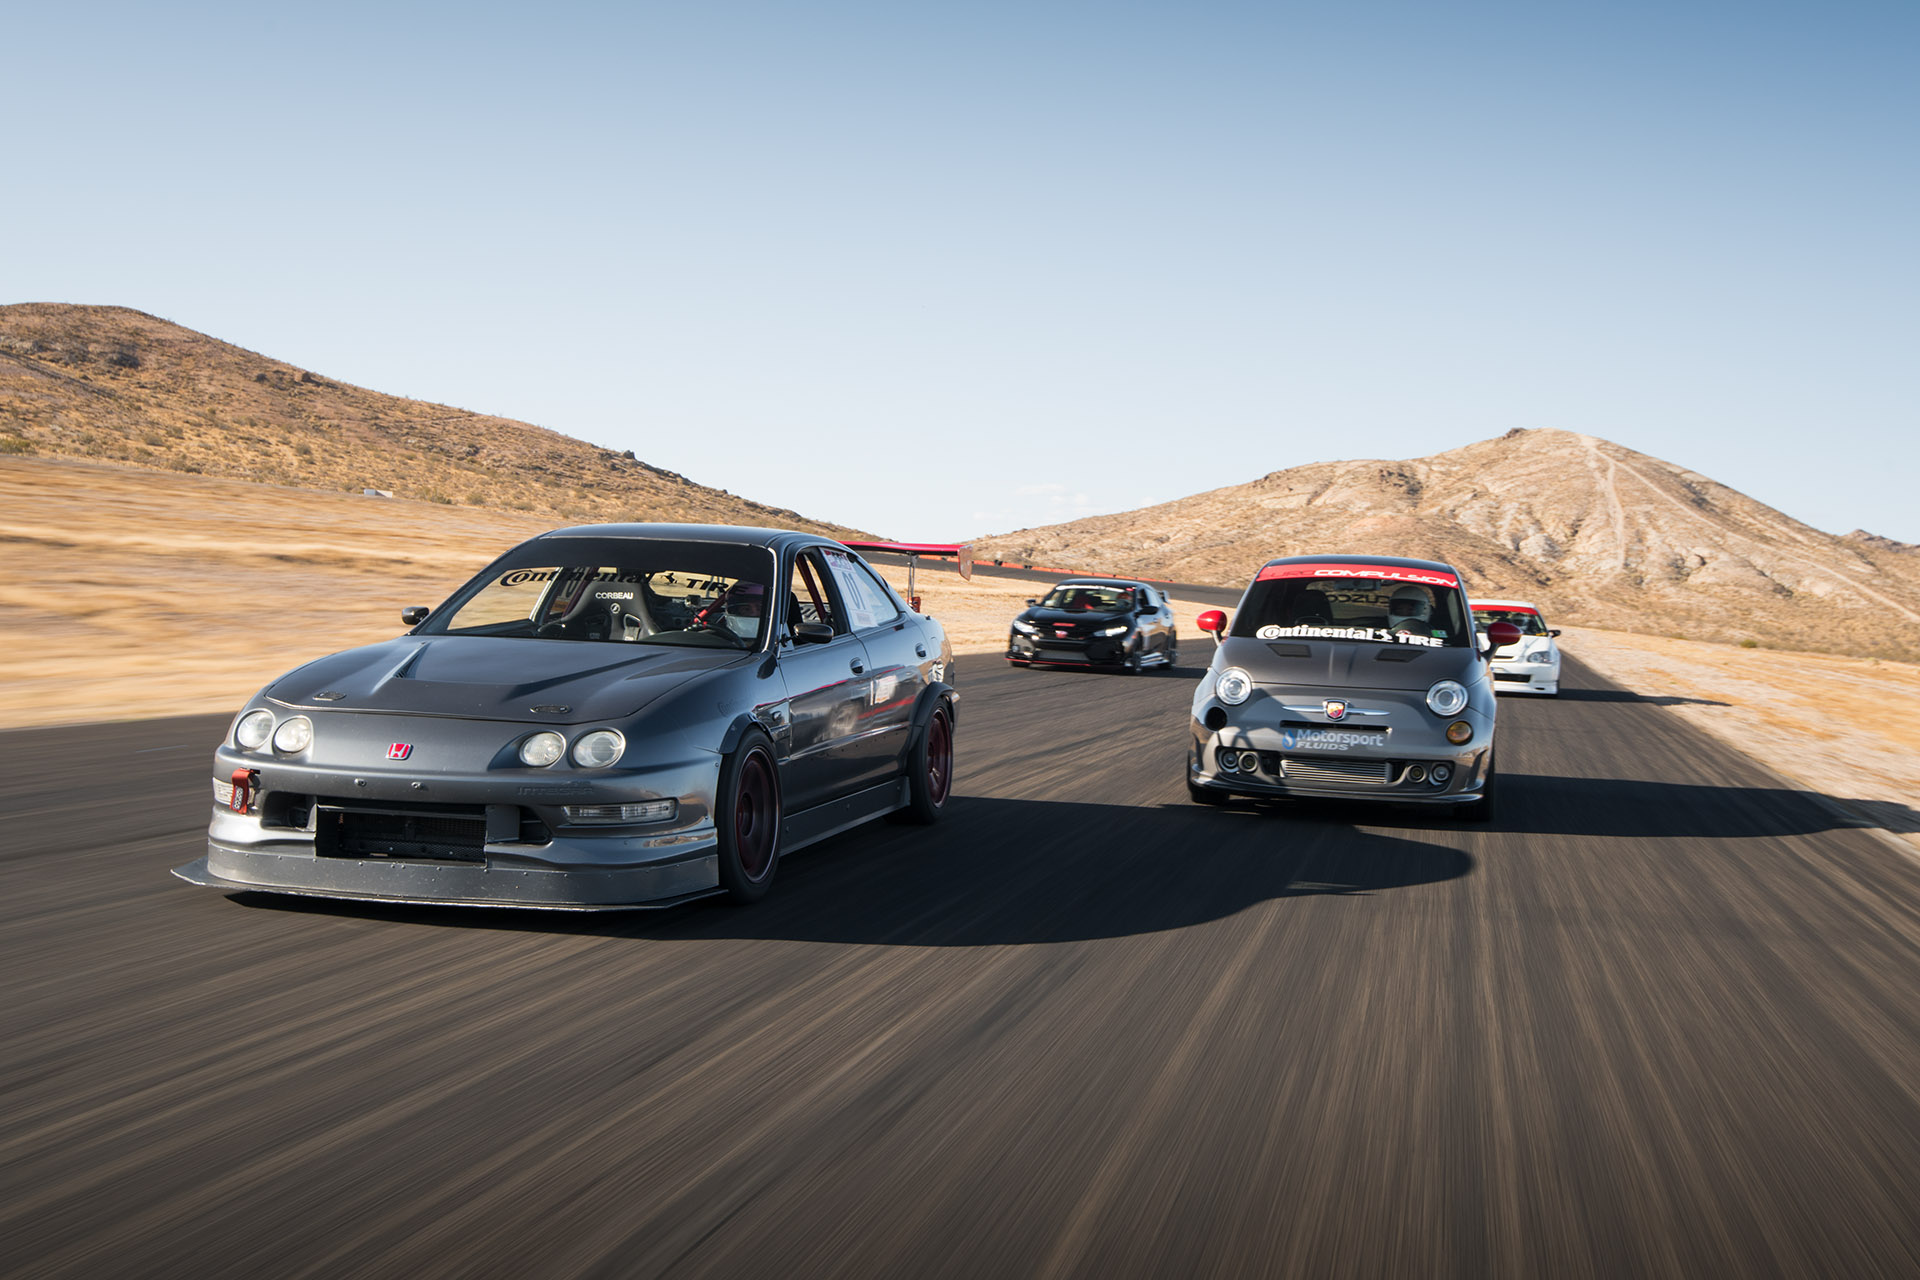 Luke Munnell motorsports photography FF Battle group track shot at Willow Springs for Super Street magazine